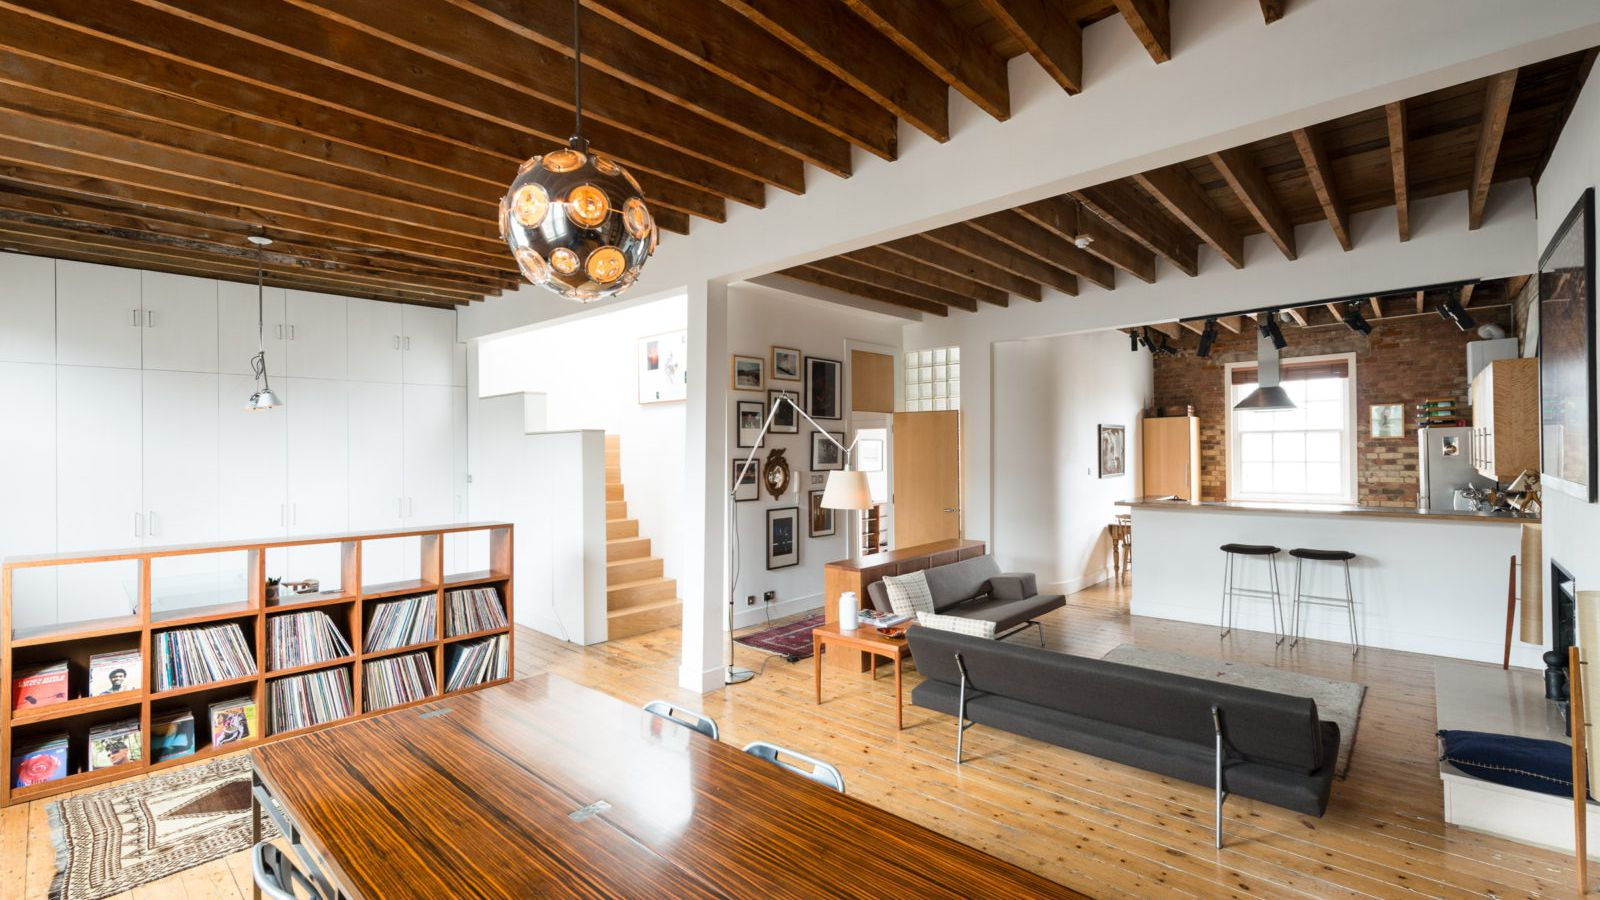 Converted loft with roof terrace asks 24M in London  Curbed